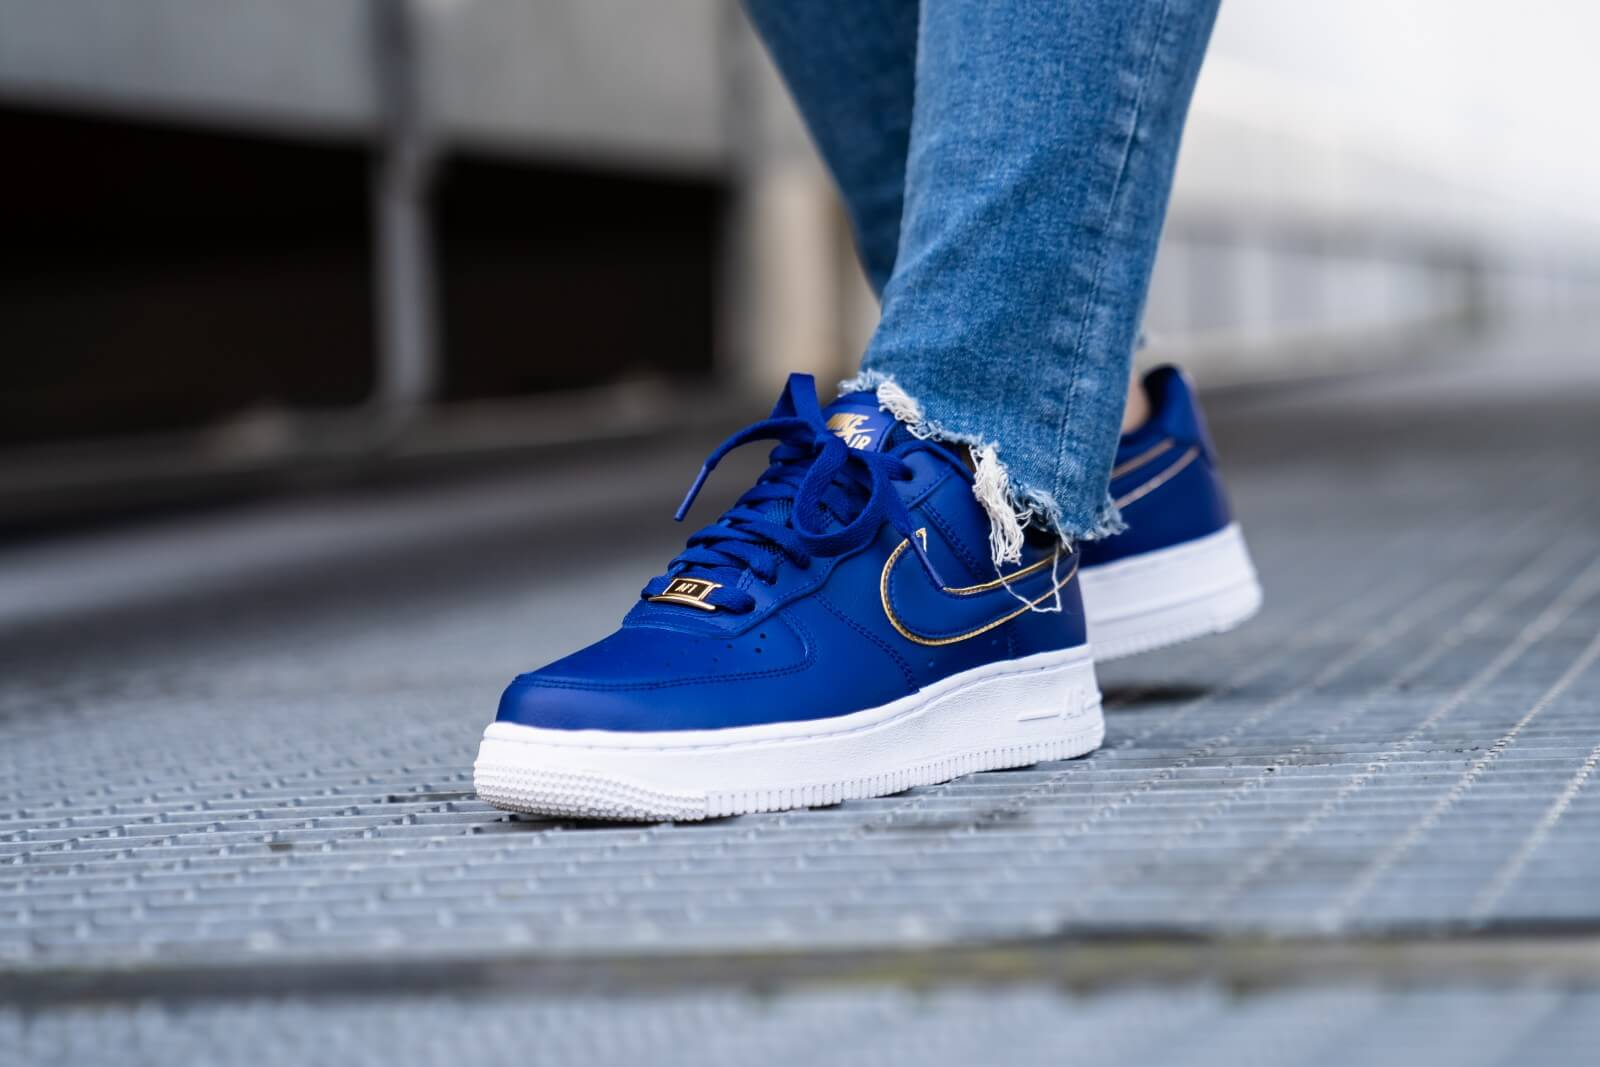 nike air force 1 blu e bianche